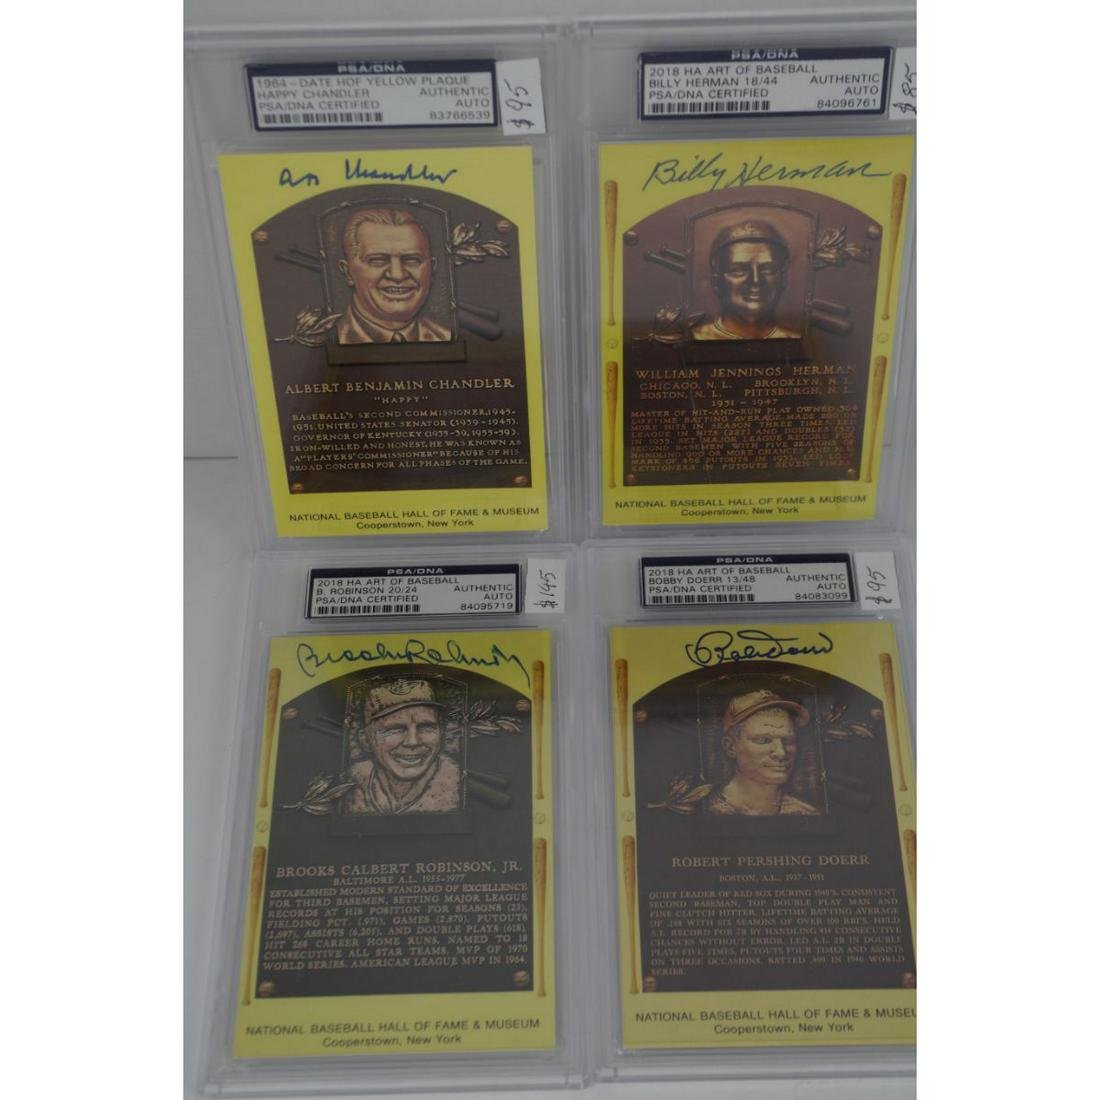 PSA GRADED AUTOGRAPHED HALL OF FAME BASEBALL CARDS